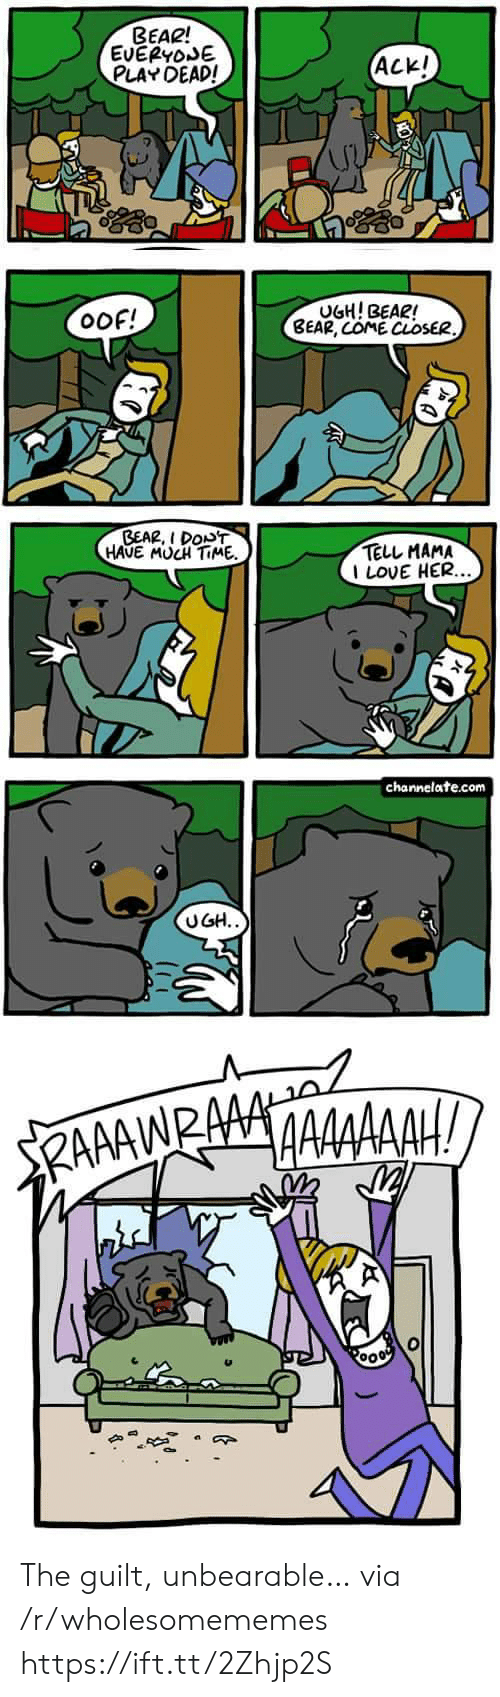 channelate: BEAR!  EVERYOSE  PLAY DEAD!  ACK!  UGH! BEAR!  BEAR, COME CLOSER.  oOf!  BEAR, I DONT  HAVE MUCH TIME  TELL MAMA  I LOVE HER...  channelate.com  UGH..  RAAAWRAAA The guilt, unbearable… via /r/wholesomememes https://ift.tt/2Zhjp2S